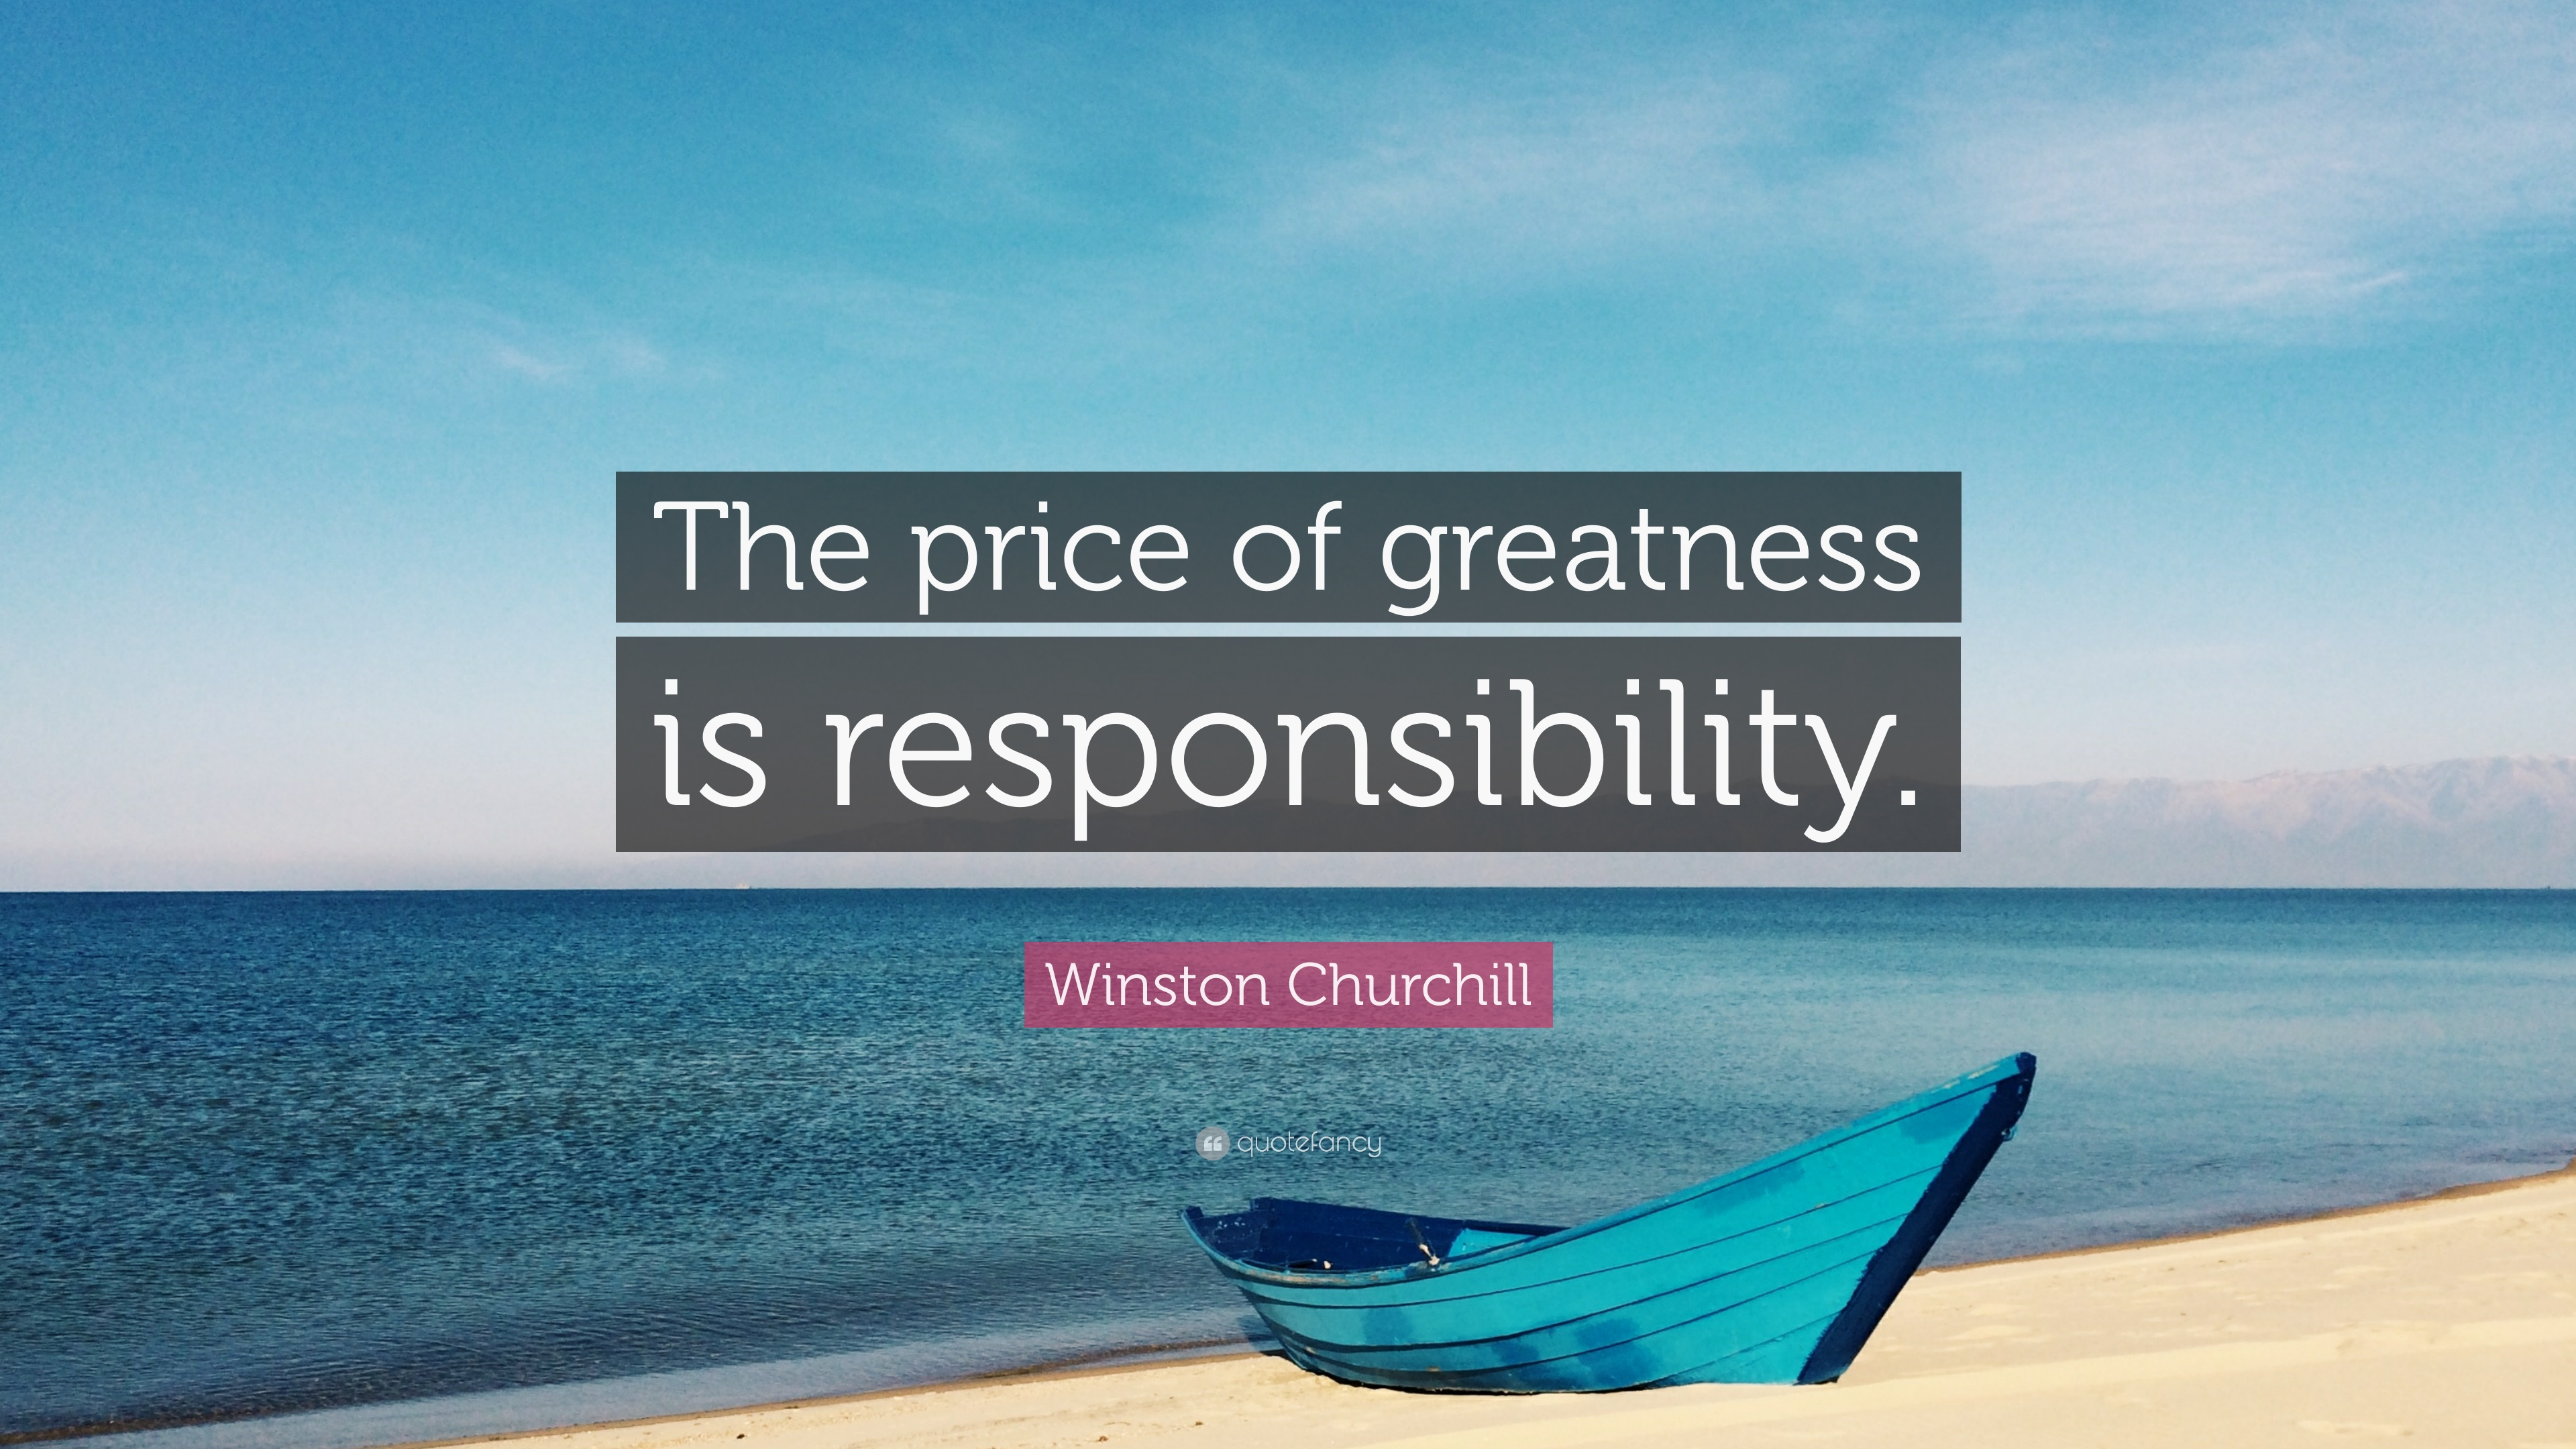 The price of greatness is responsibility essay